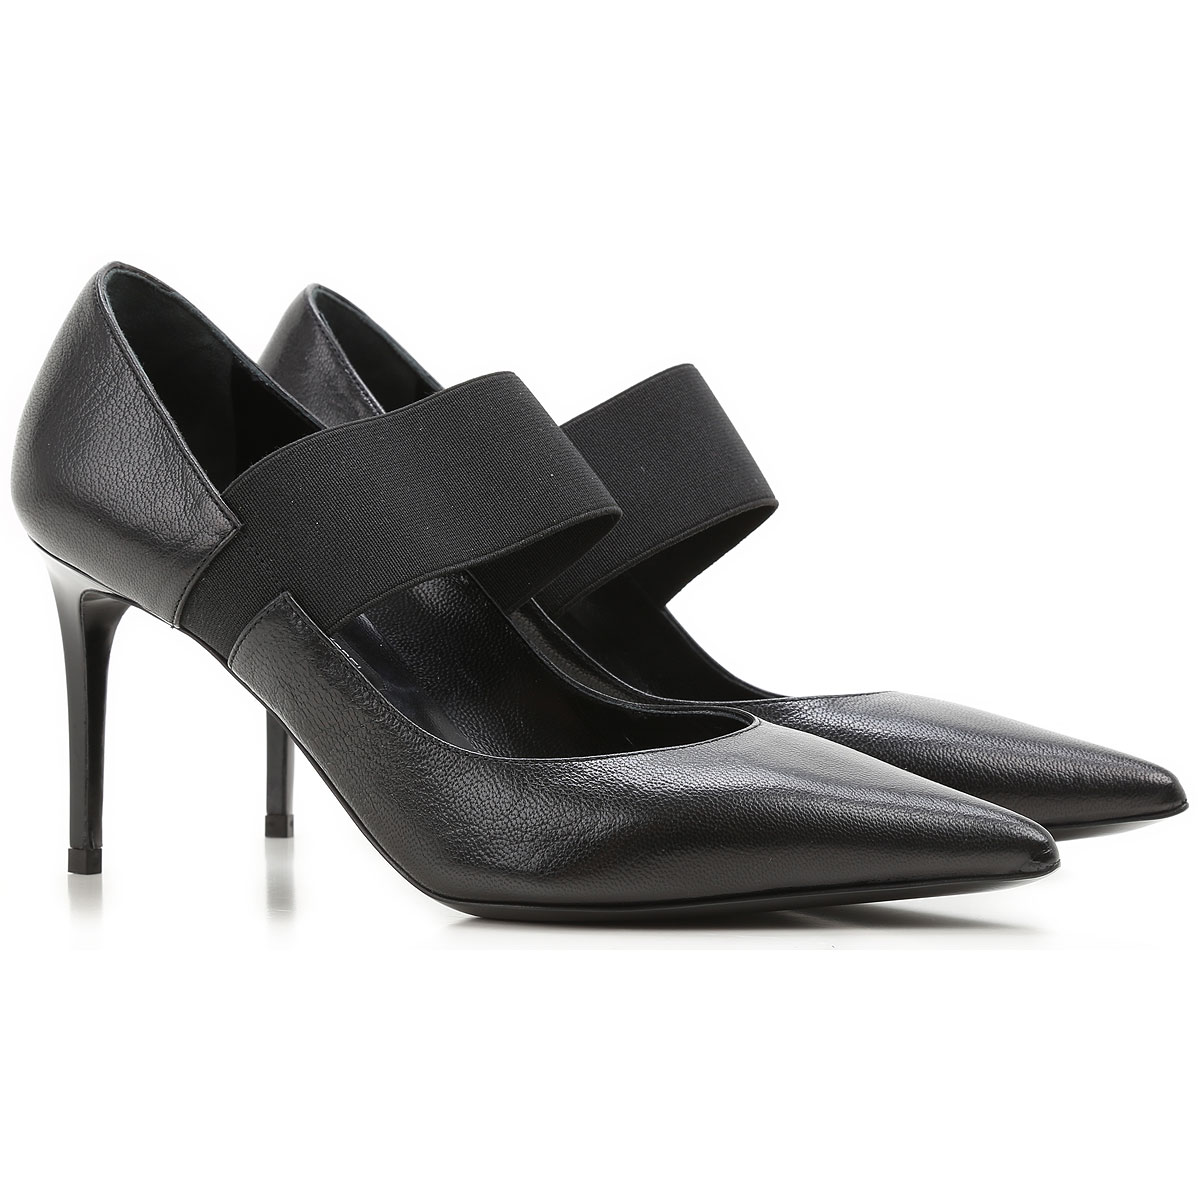 Philippe Model Pumps & High Heels for Women in Outlet Black USA - GOOFASH